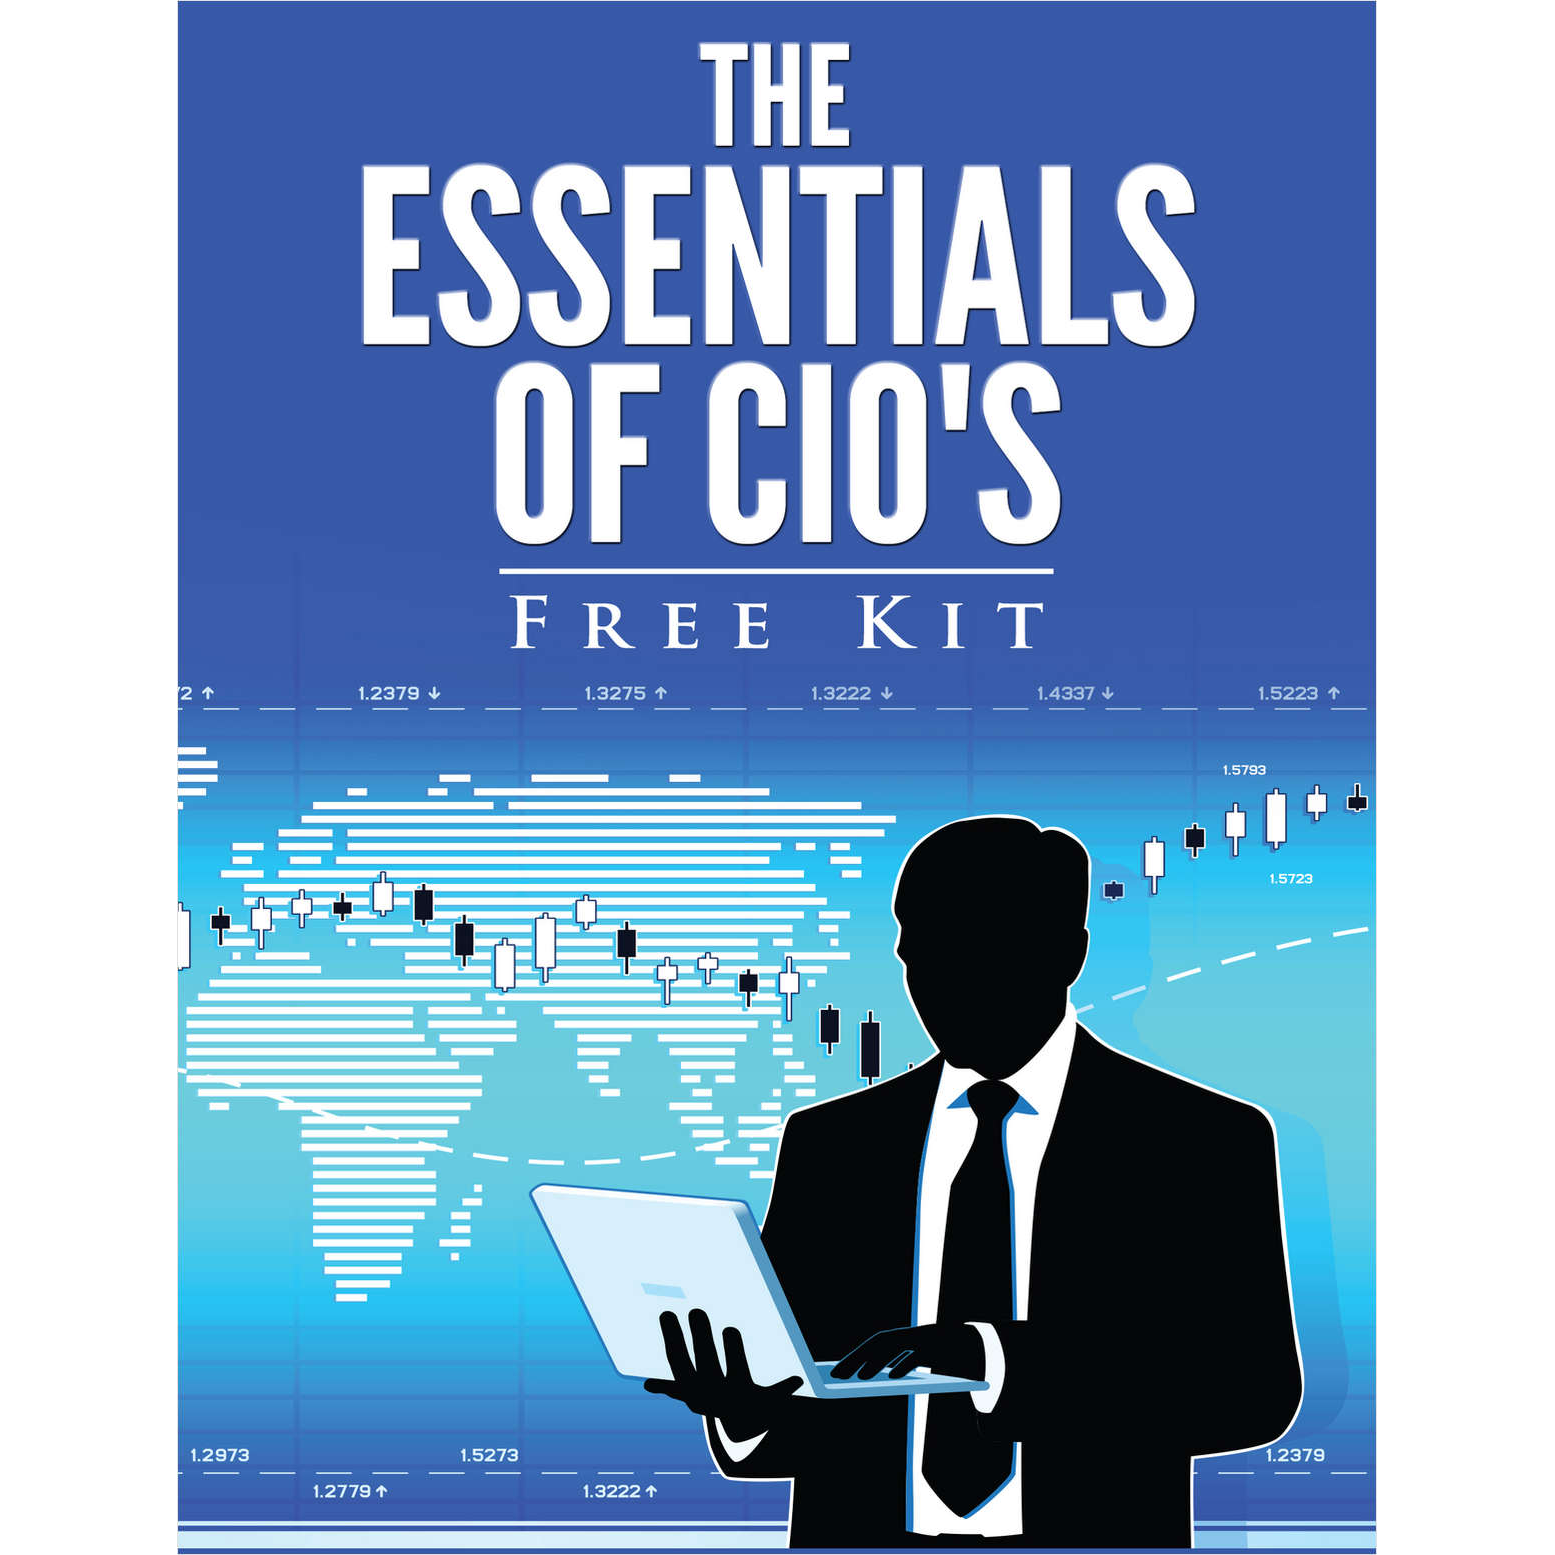 The Essentials of CIO's Screenshot